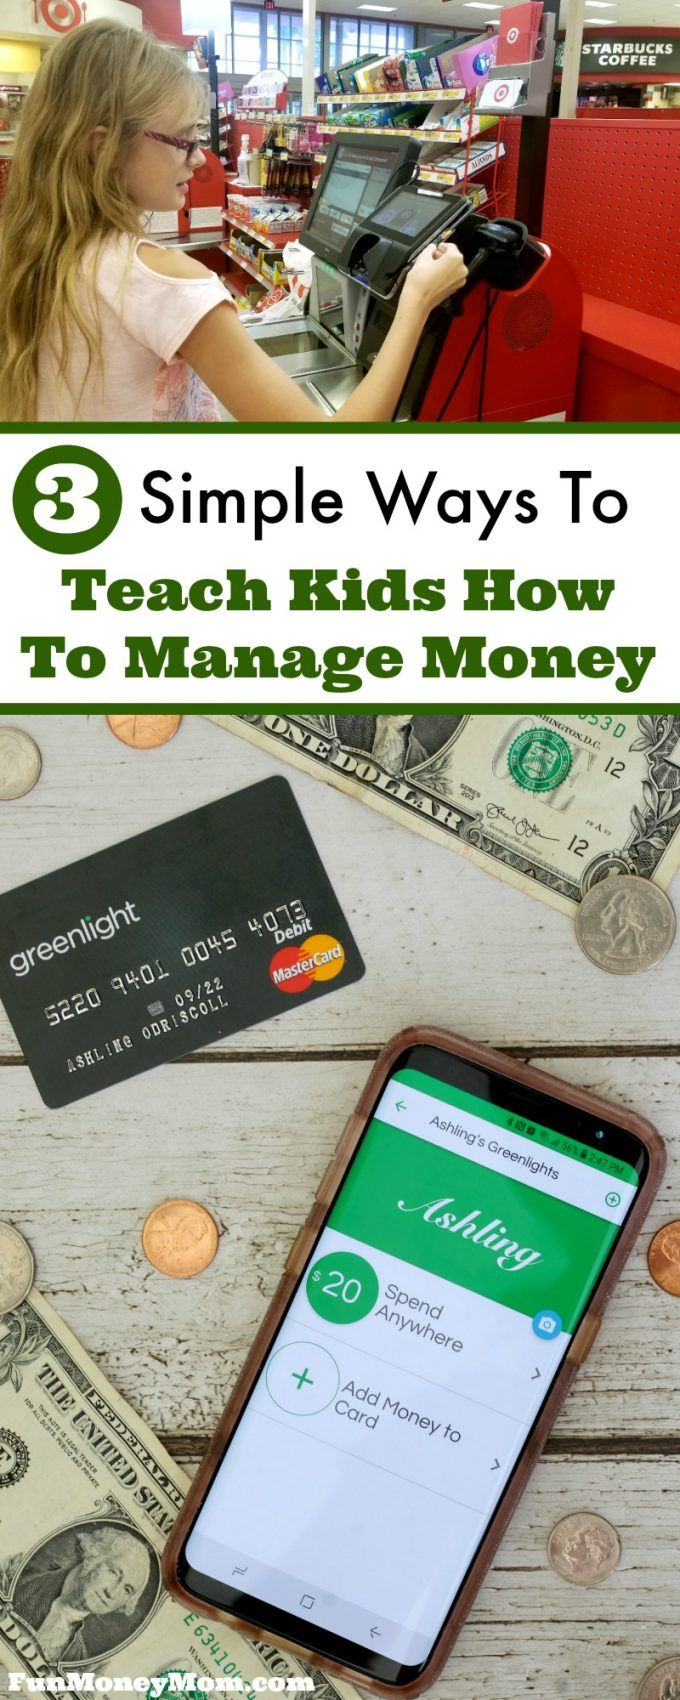 3 Simple Ways To Teach Kids How To Manage Money Kids Money Management Teaching Kids Money Money Smart Kids